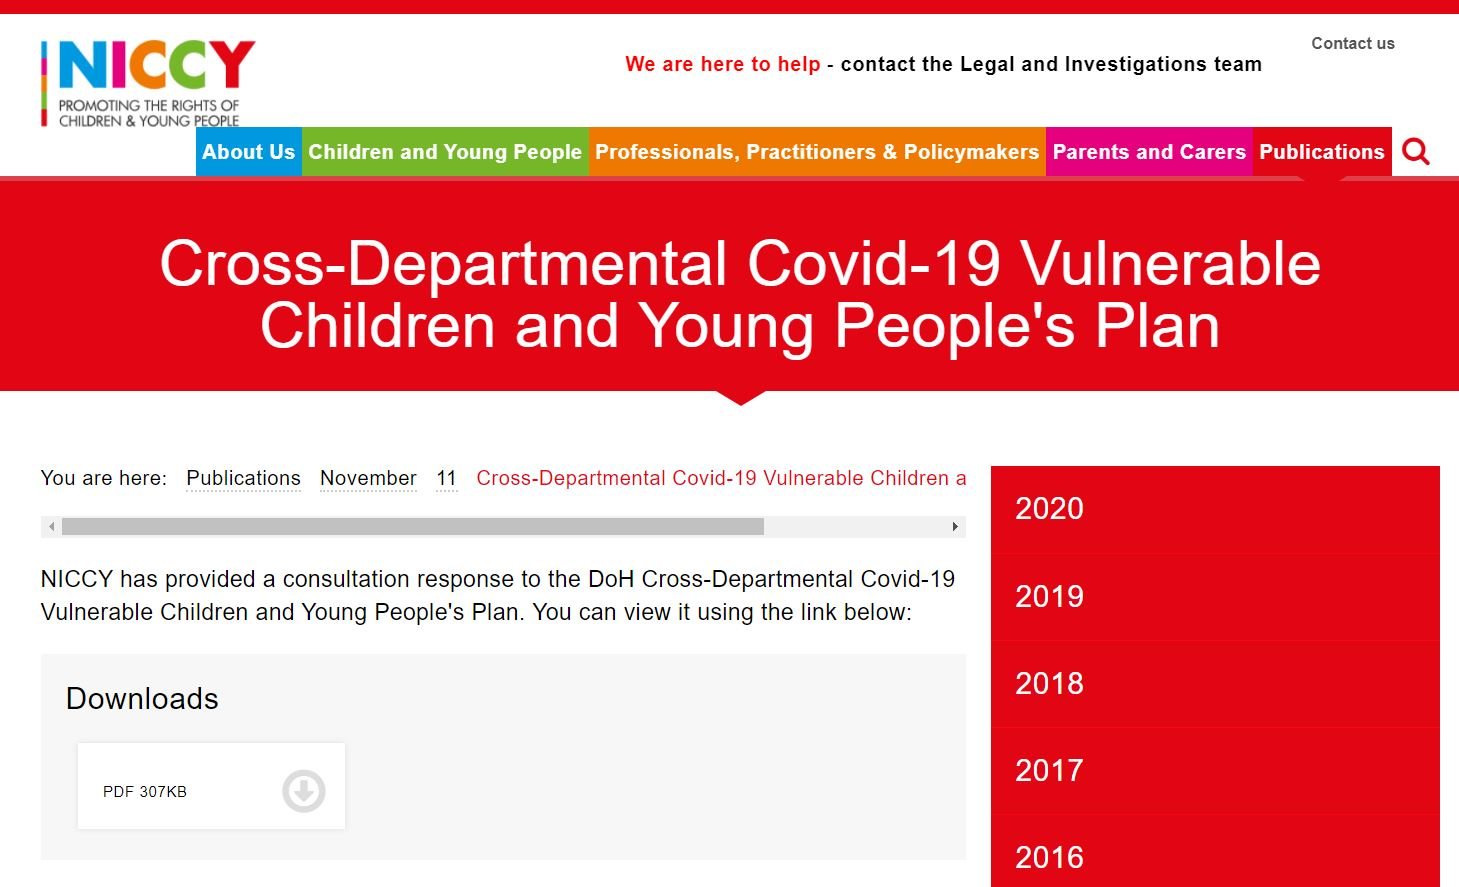 Image of Cross-Departmental Covid-19 Vulnerable Children and Young People's Plan